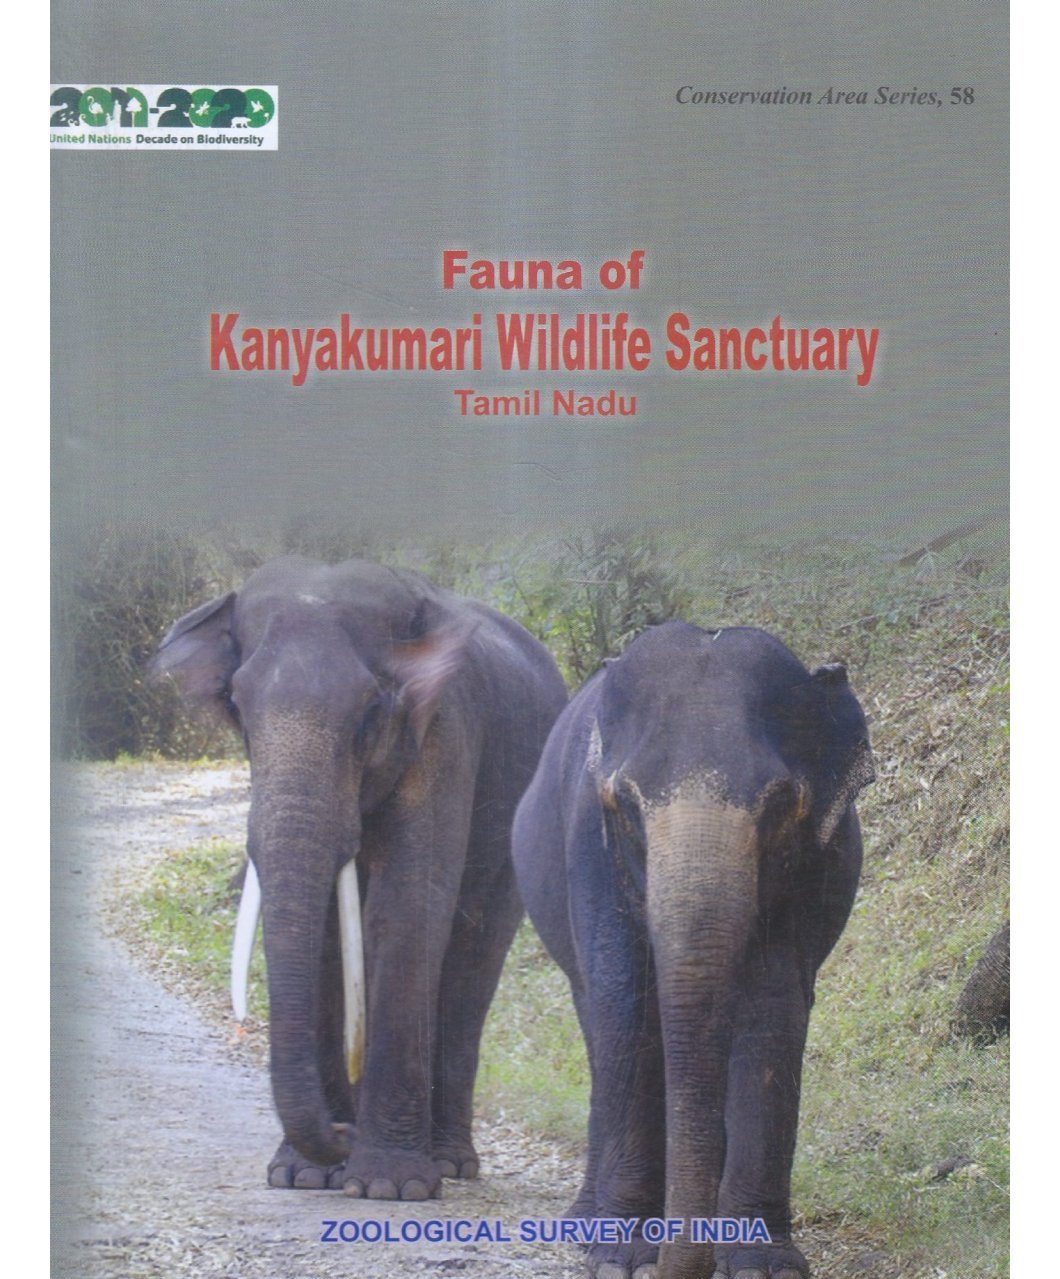 Fauna of Kanyakumari Wildlife Sanctuary, Tamil Nadu